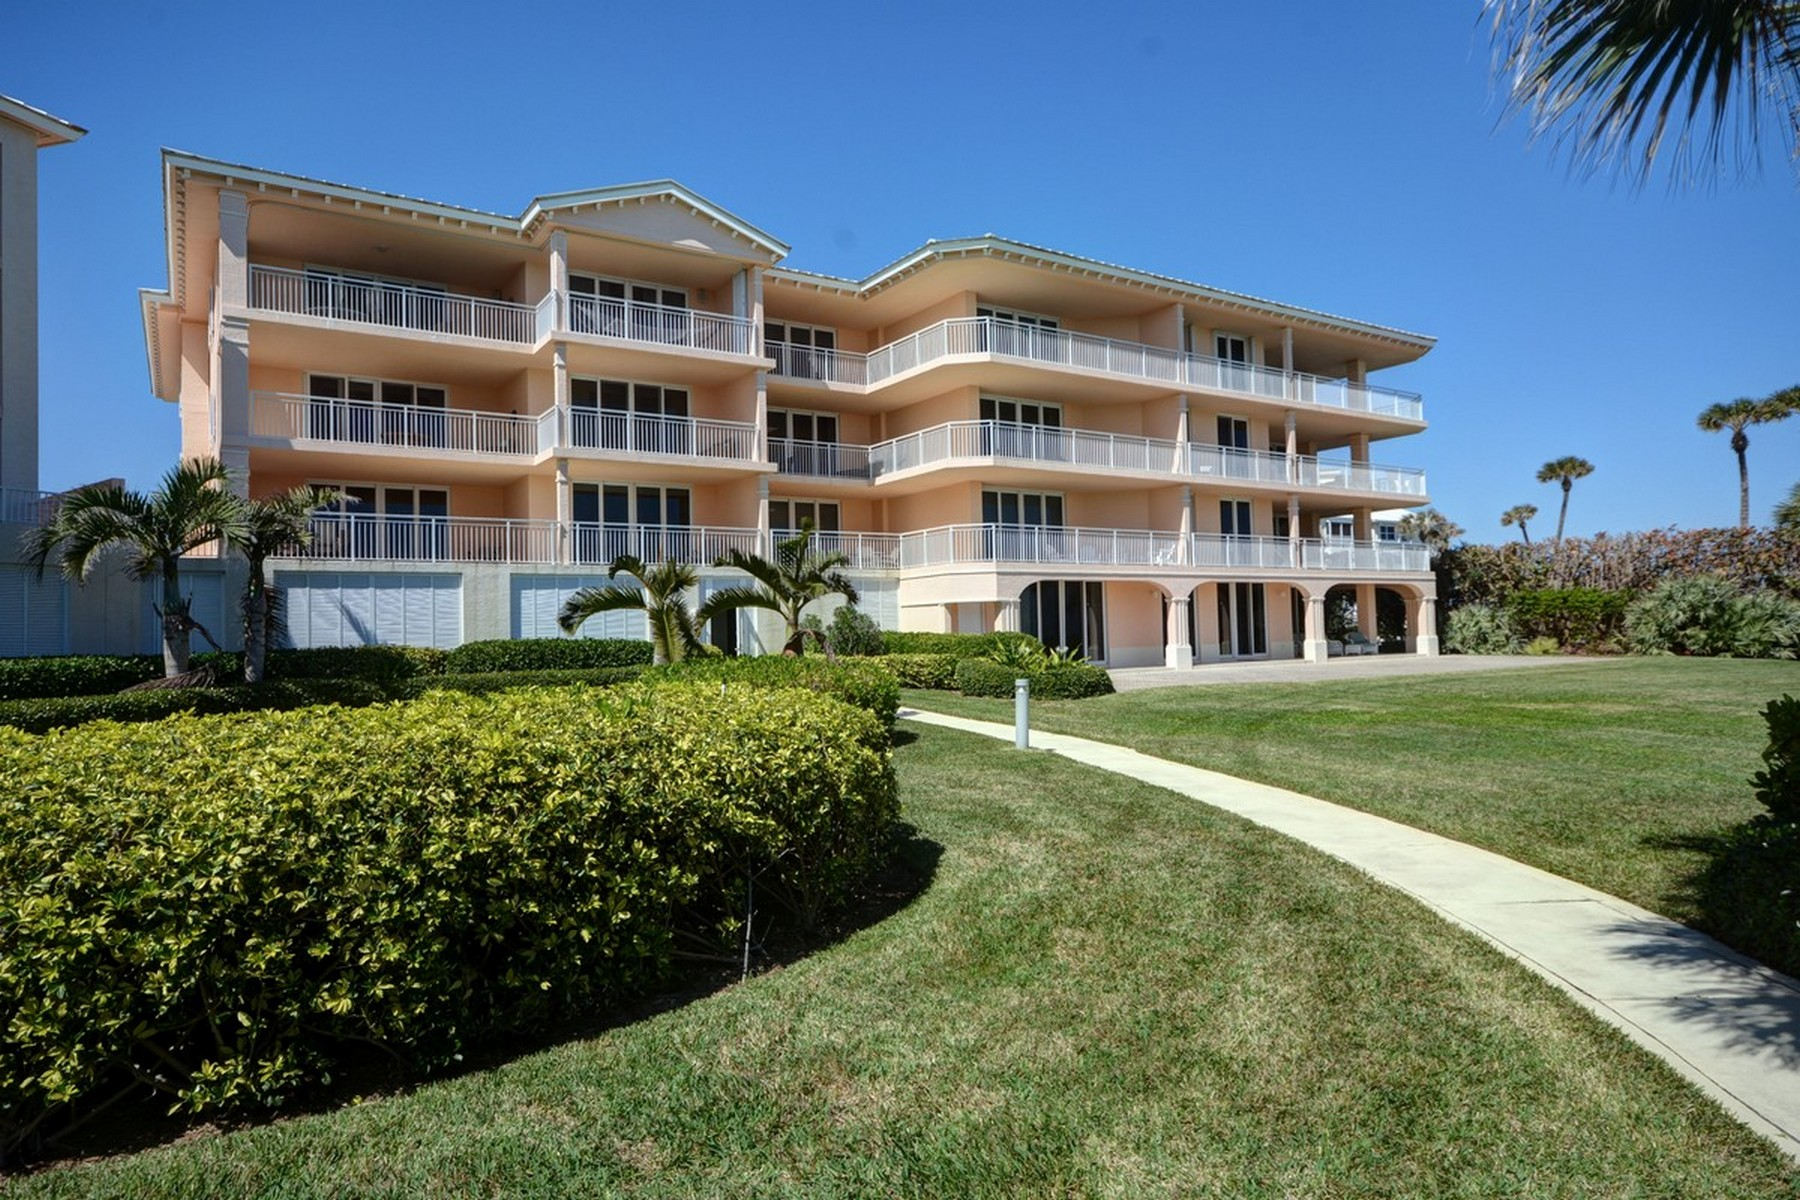 Condomínio para Venda às Spectacular Direct Oceanfront Condo 8876 N Sea Oaks Way #406 Vero Beach, Florida, 32963 Estados Unidos